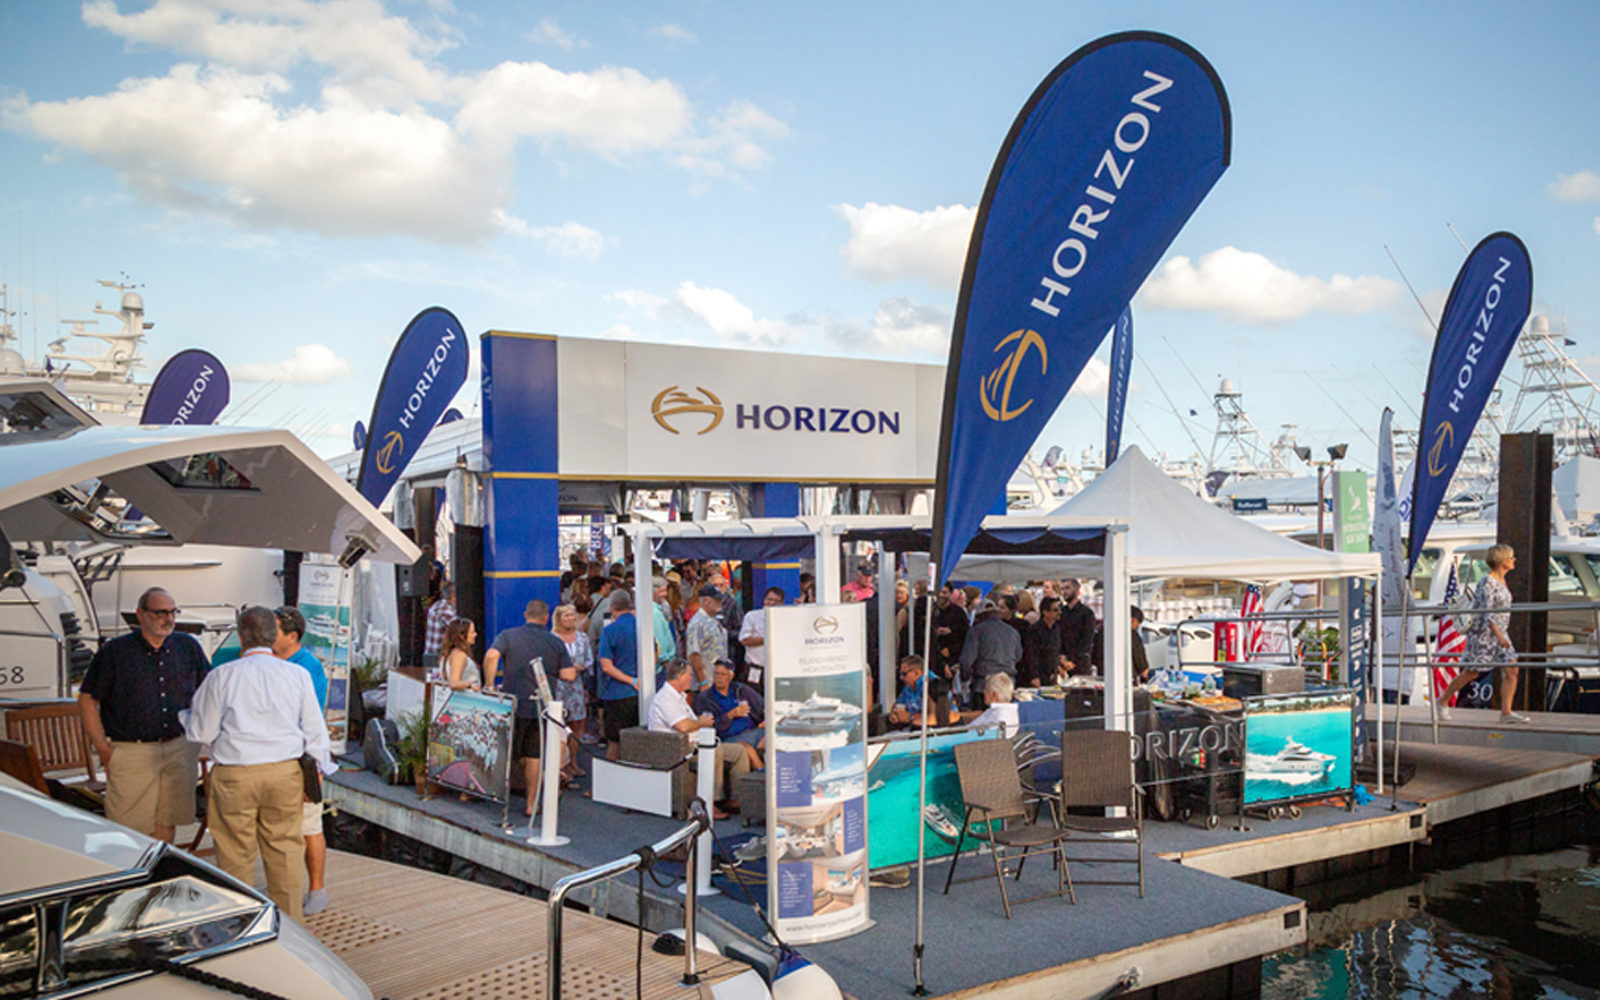 Horizon Shines at Palm Beach Boat Show